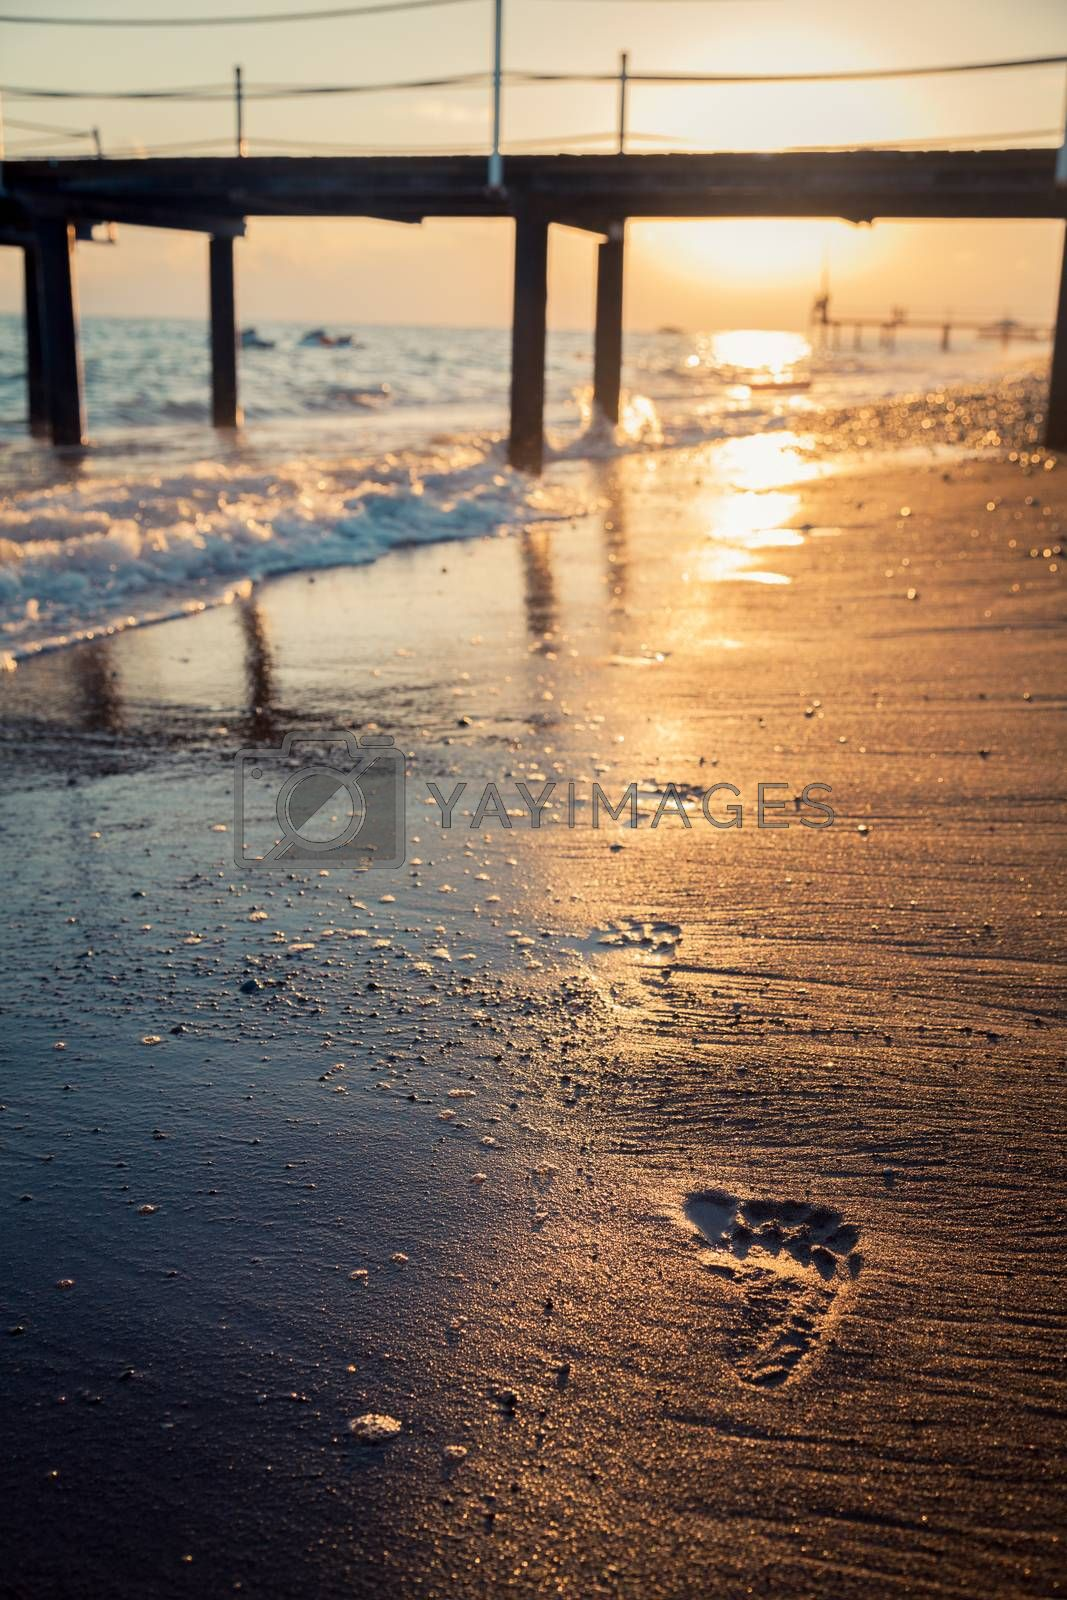 Footprints on the beach in the evening